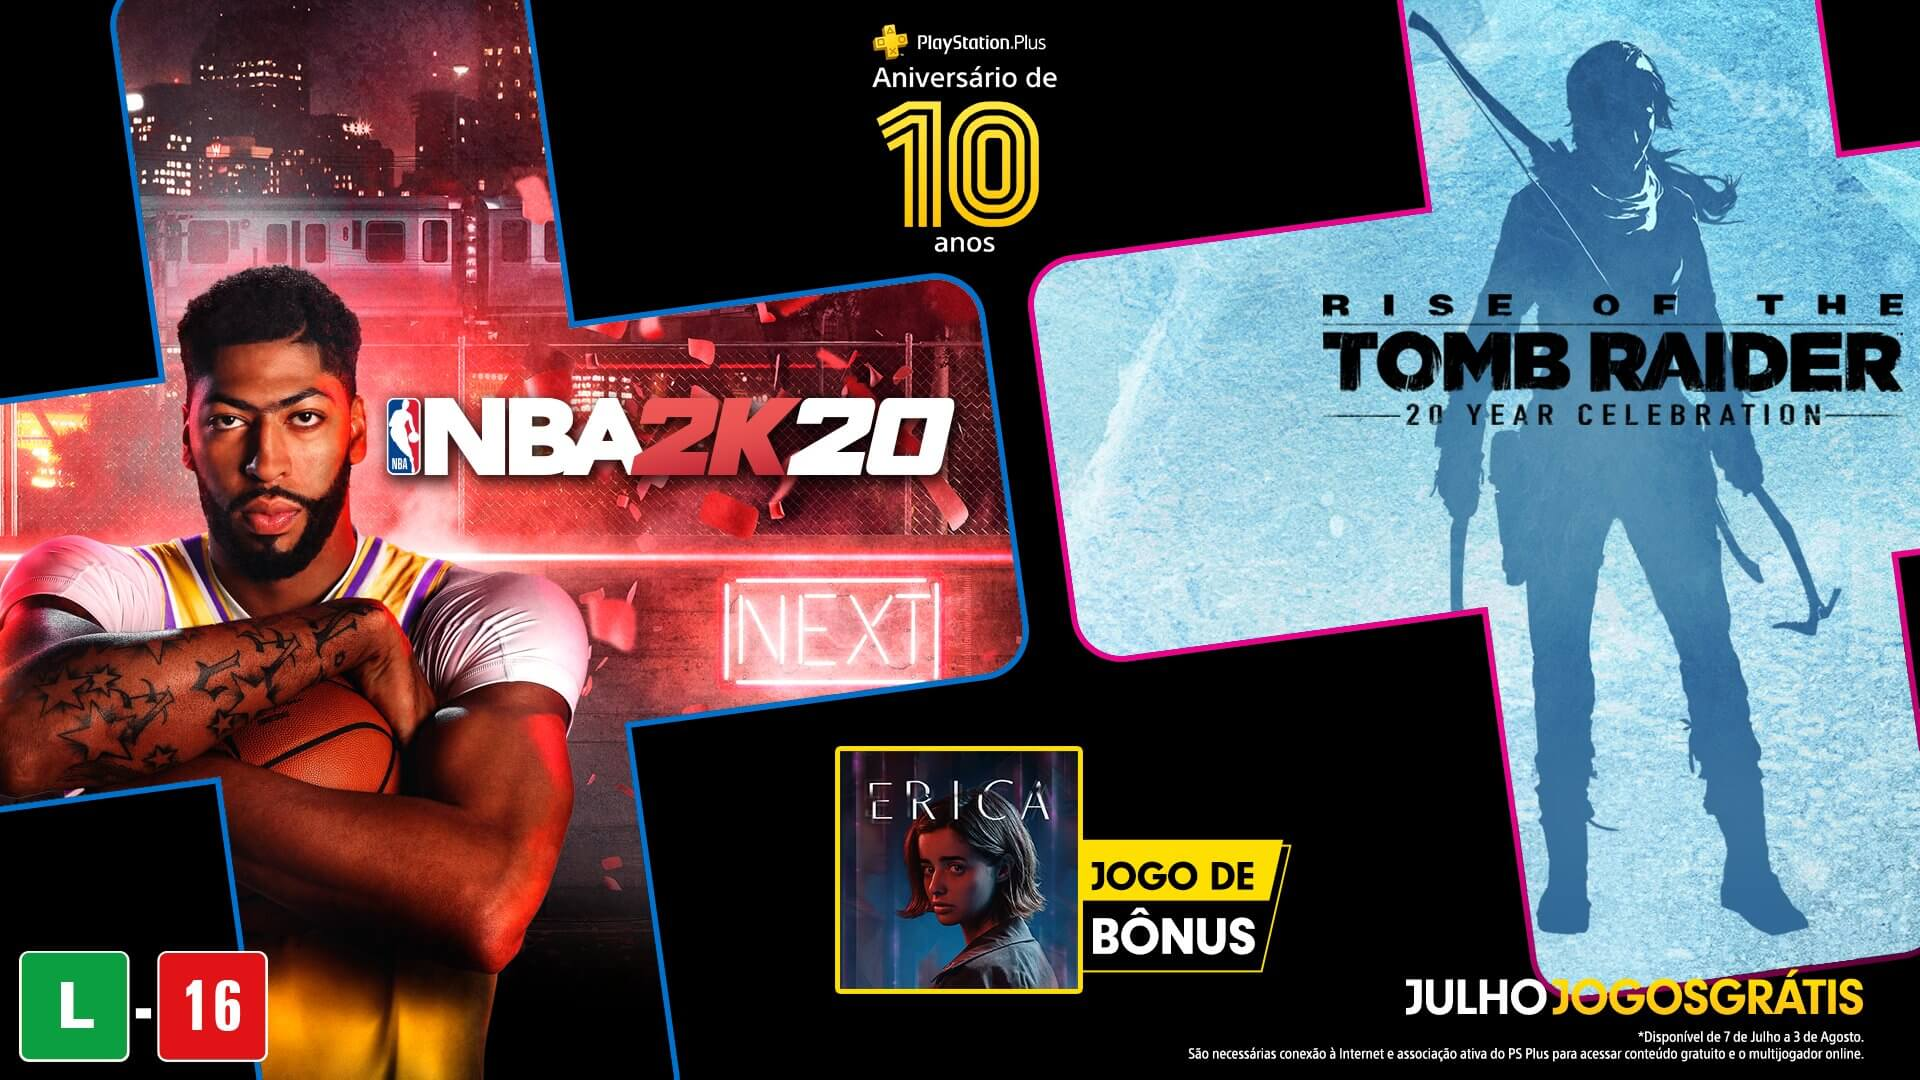 Rise of the Tomb Raider, NBA 2K20 e Erica estão gratuitos na PS Plus